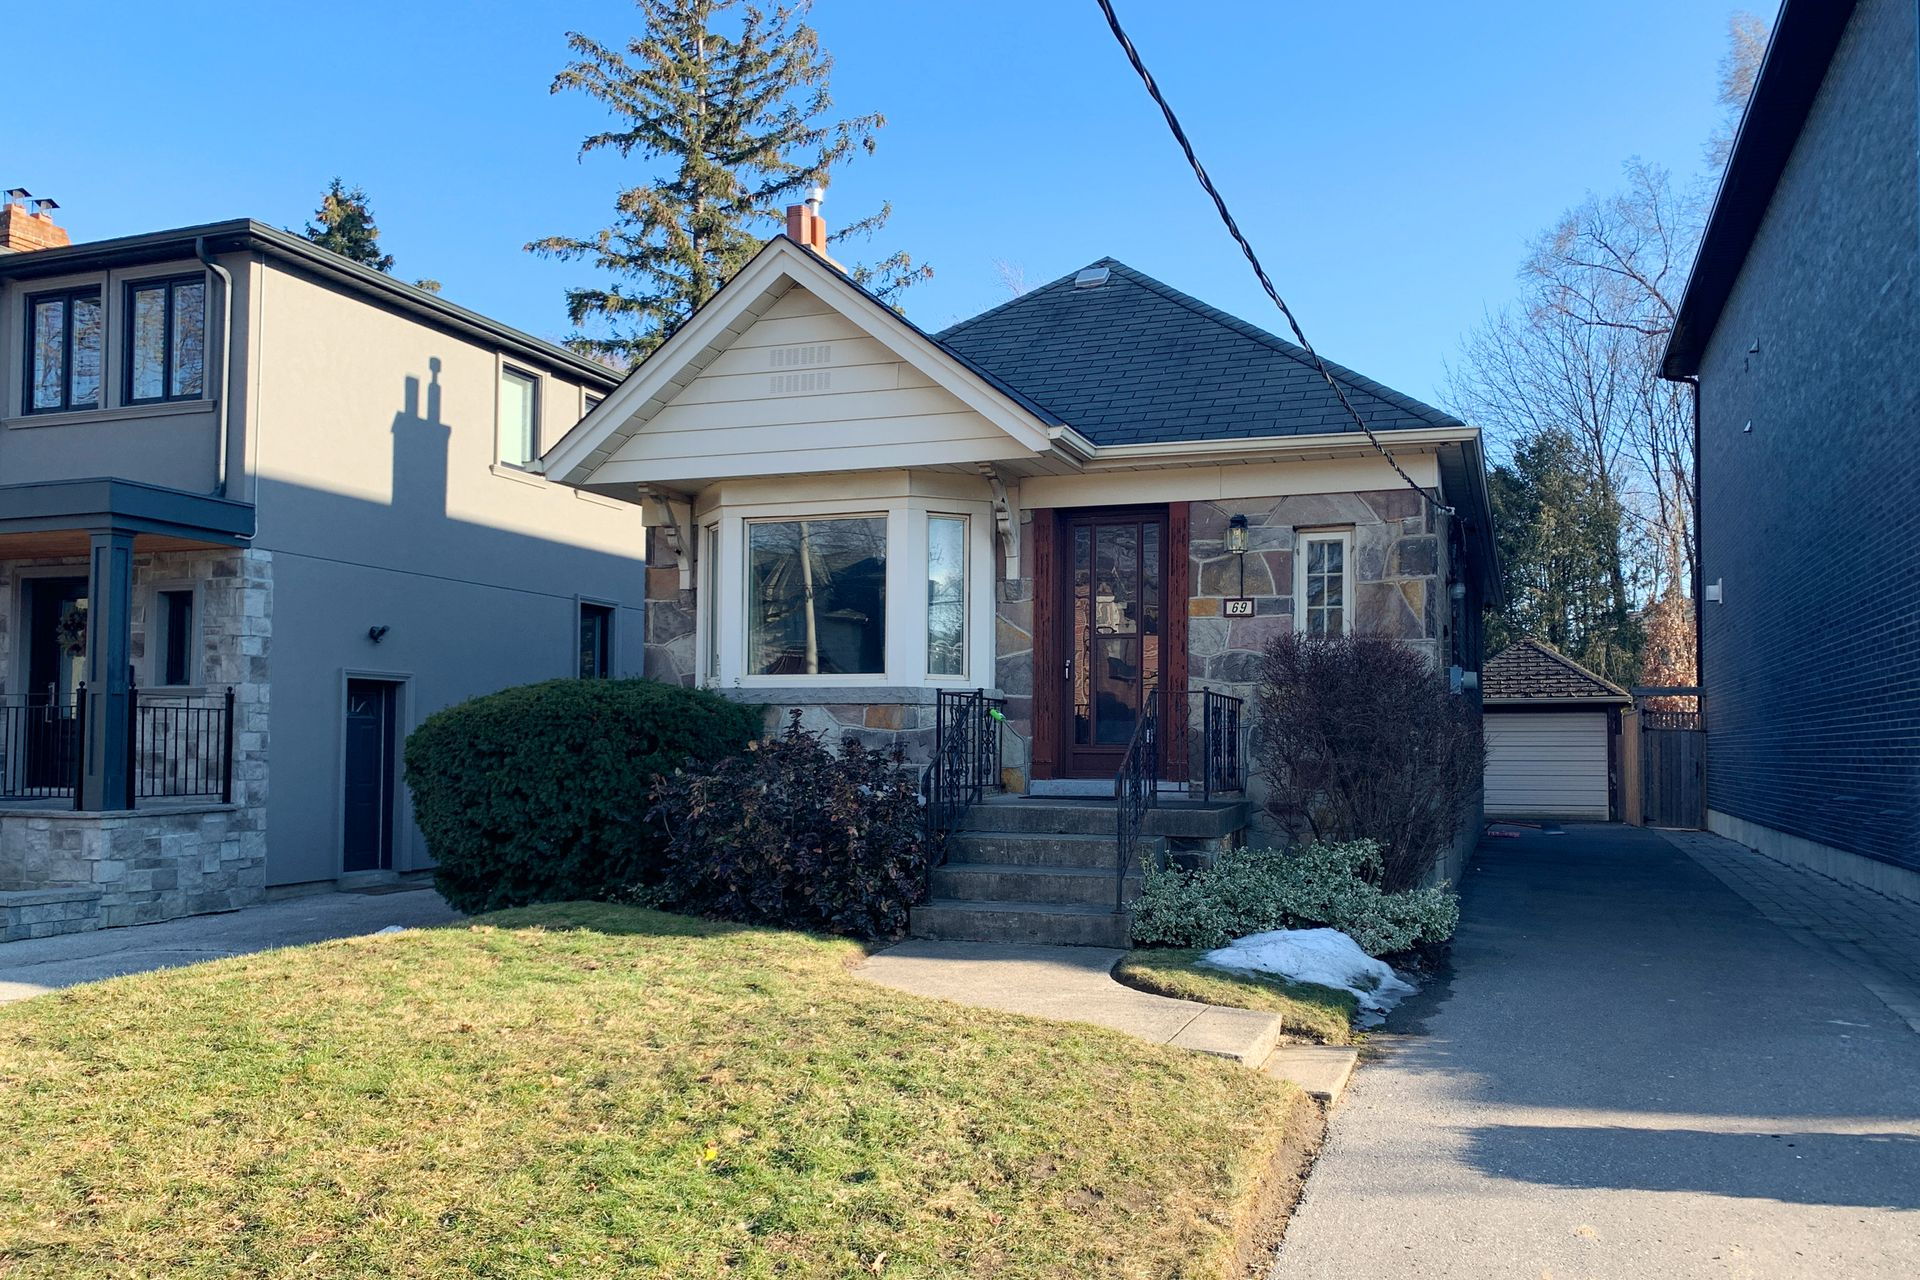 69 Vanderhoof Avenue, Leaside, Toronto